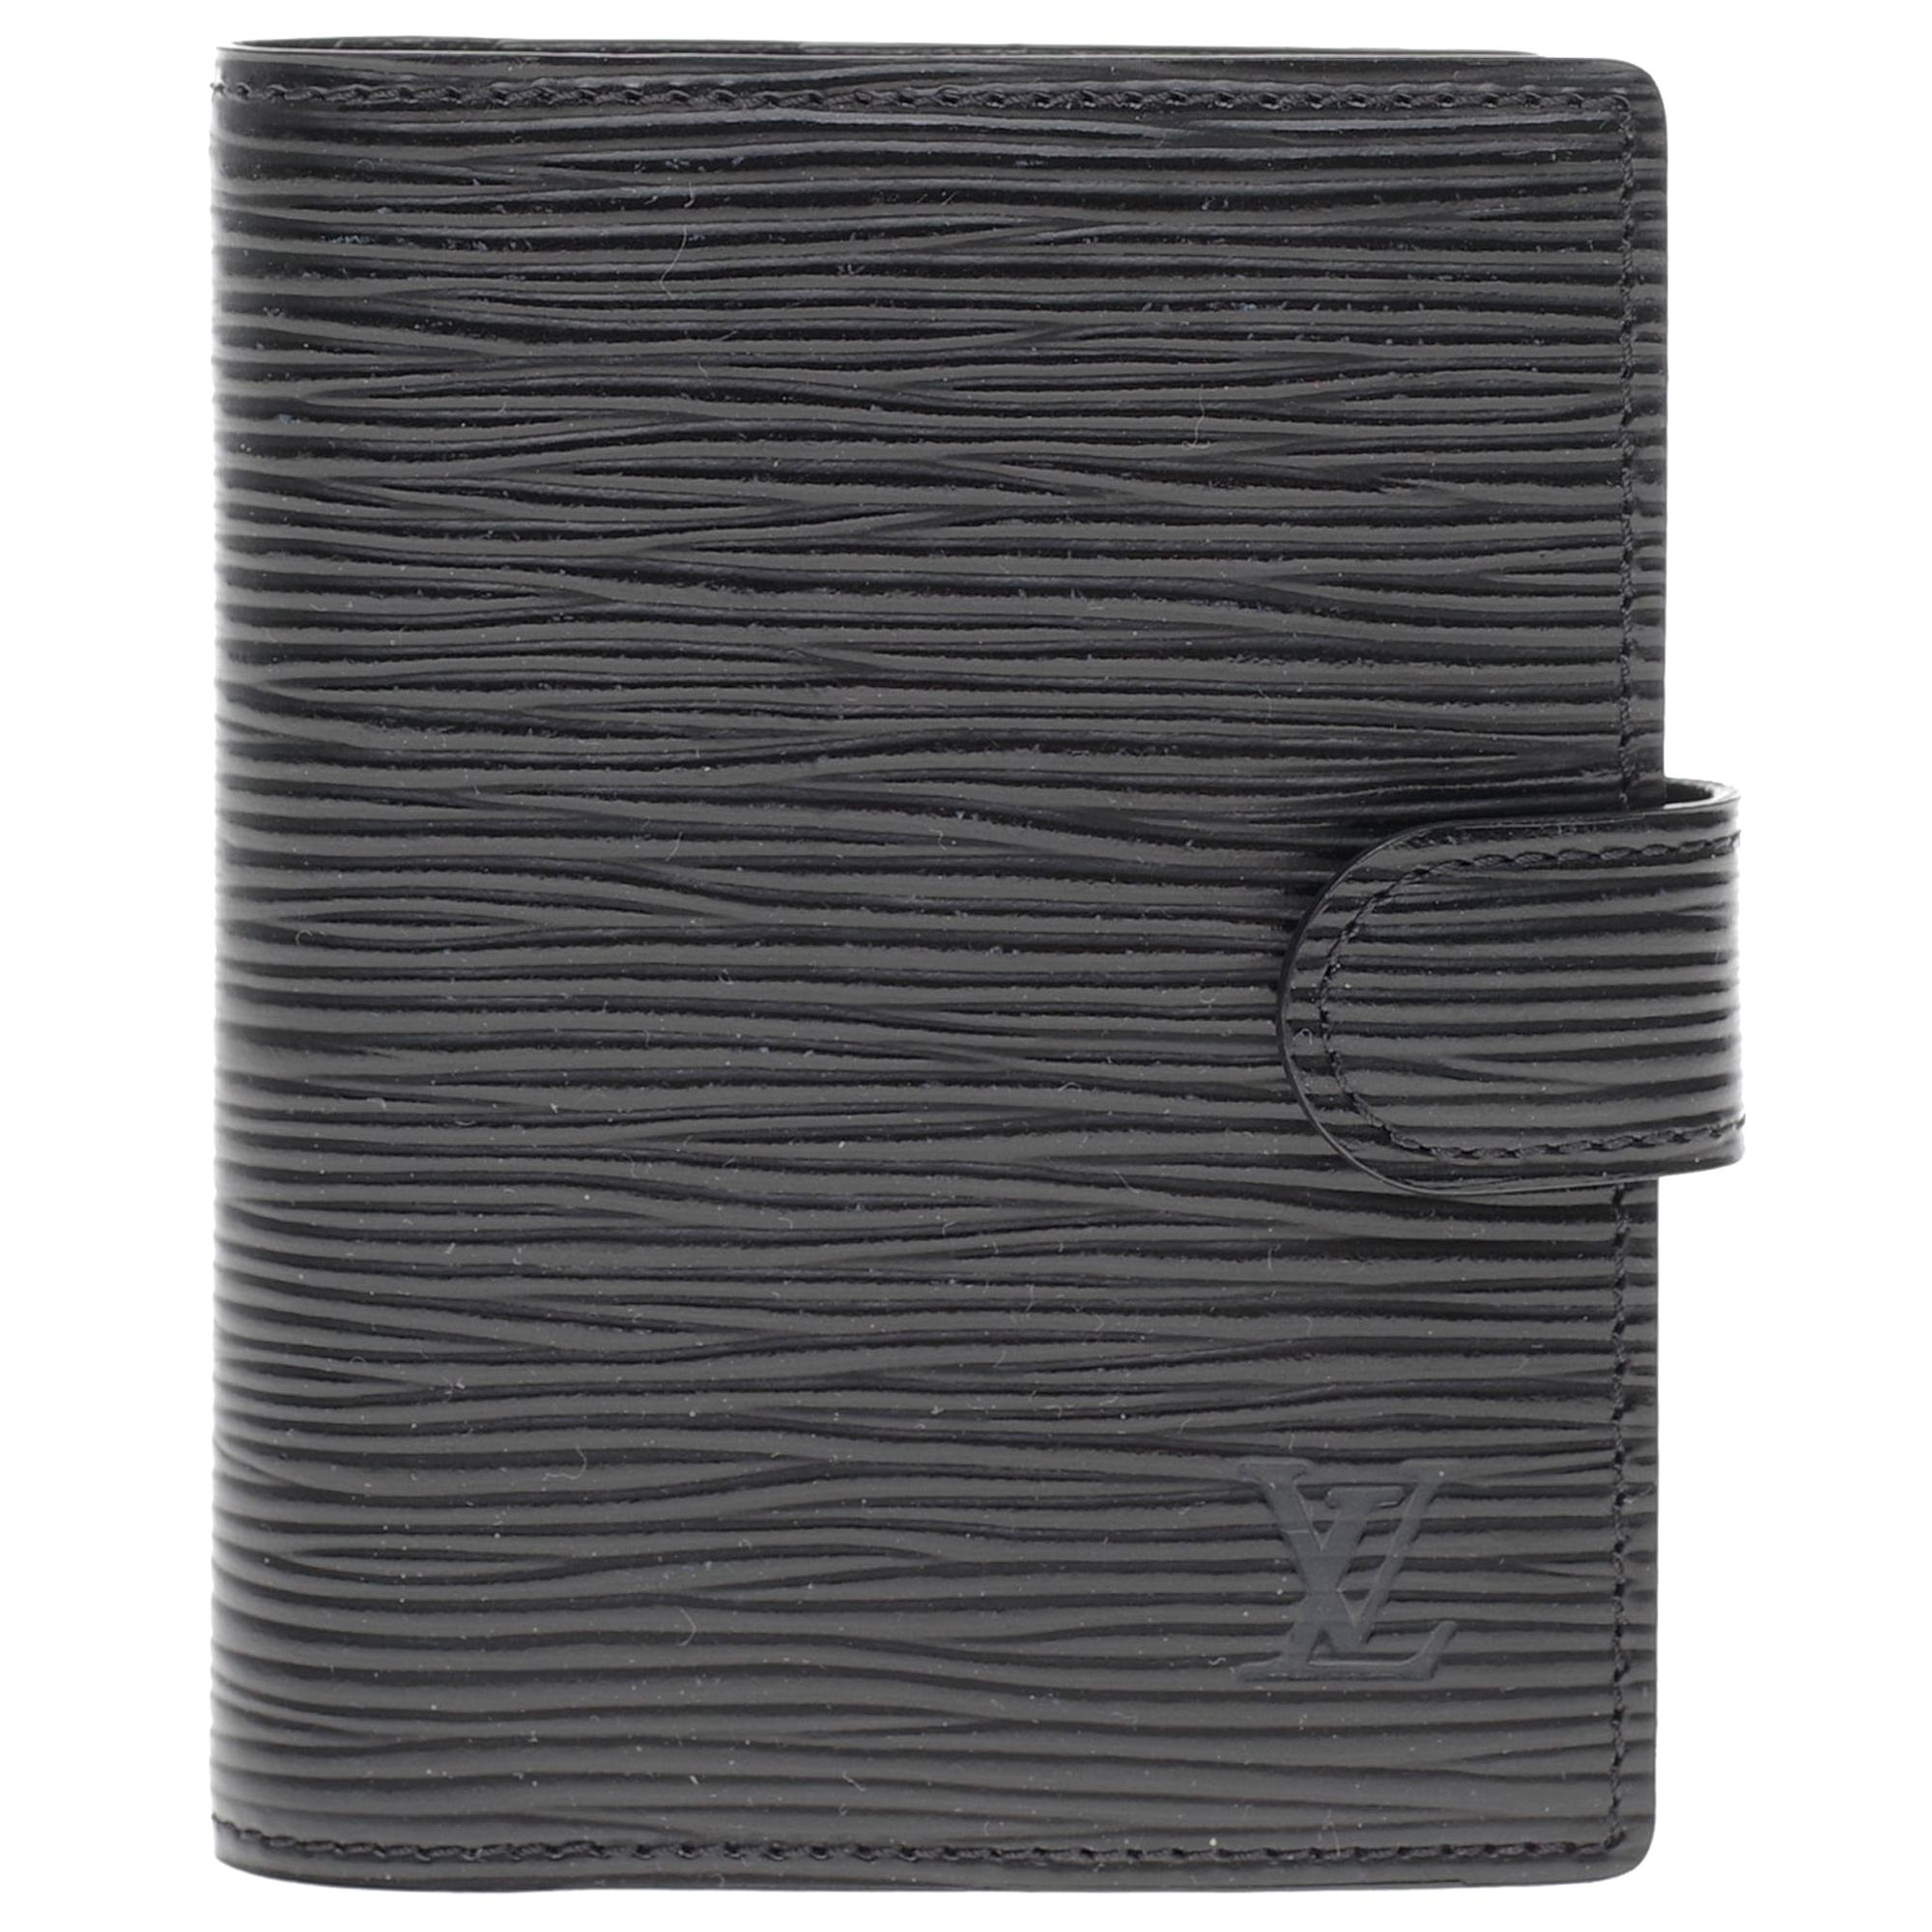 Louis Vuitton notebook in black epi leather with paper block and paper pencil